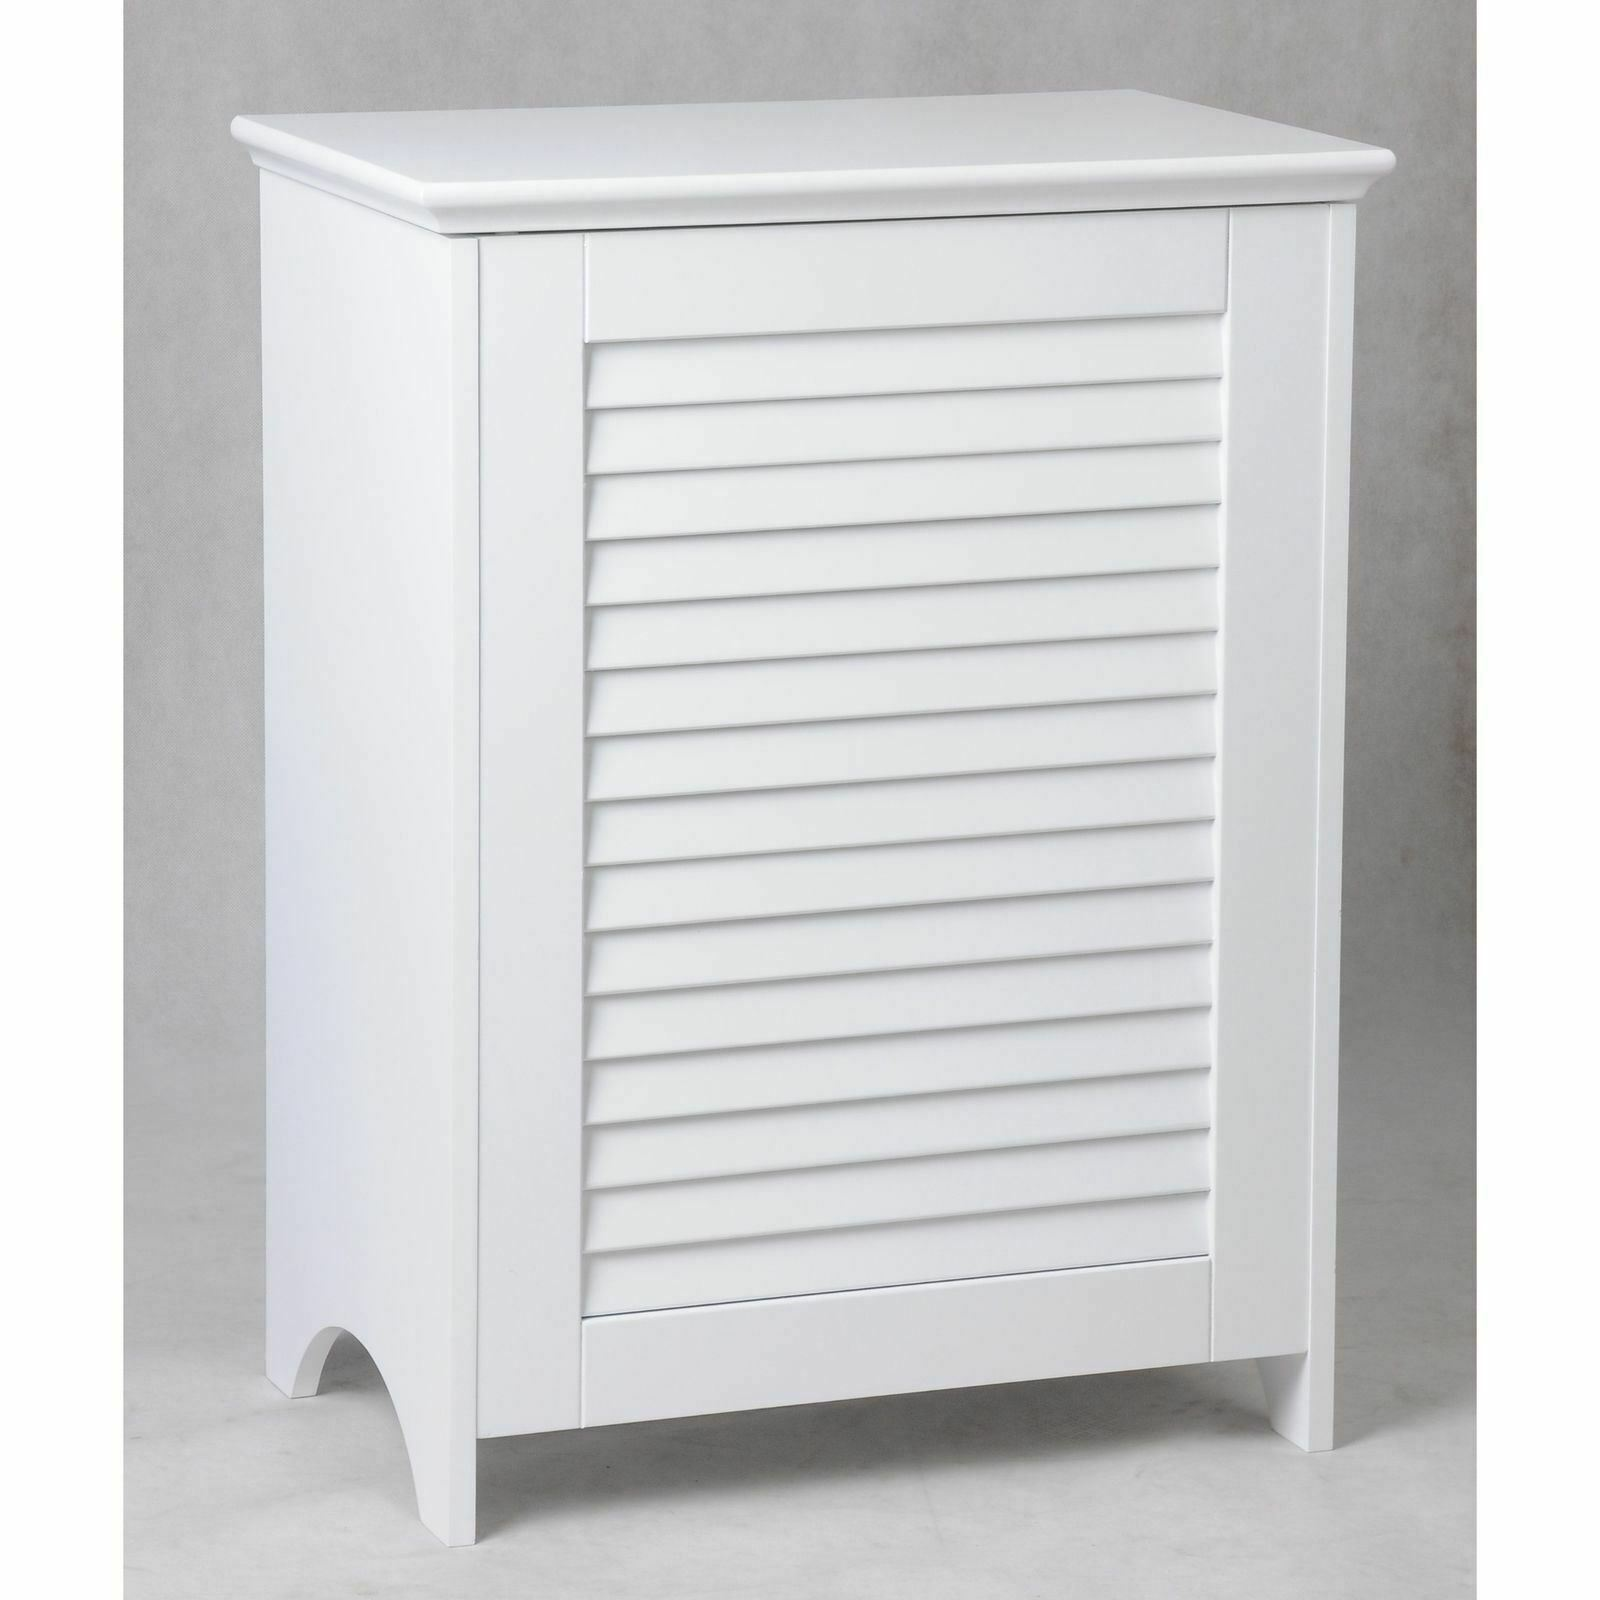 White Wooden Hamper Bathroom Laundry Storage Bin Clothes Basket Home Organizer 1 Of 4only 3 Available